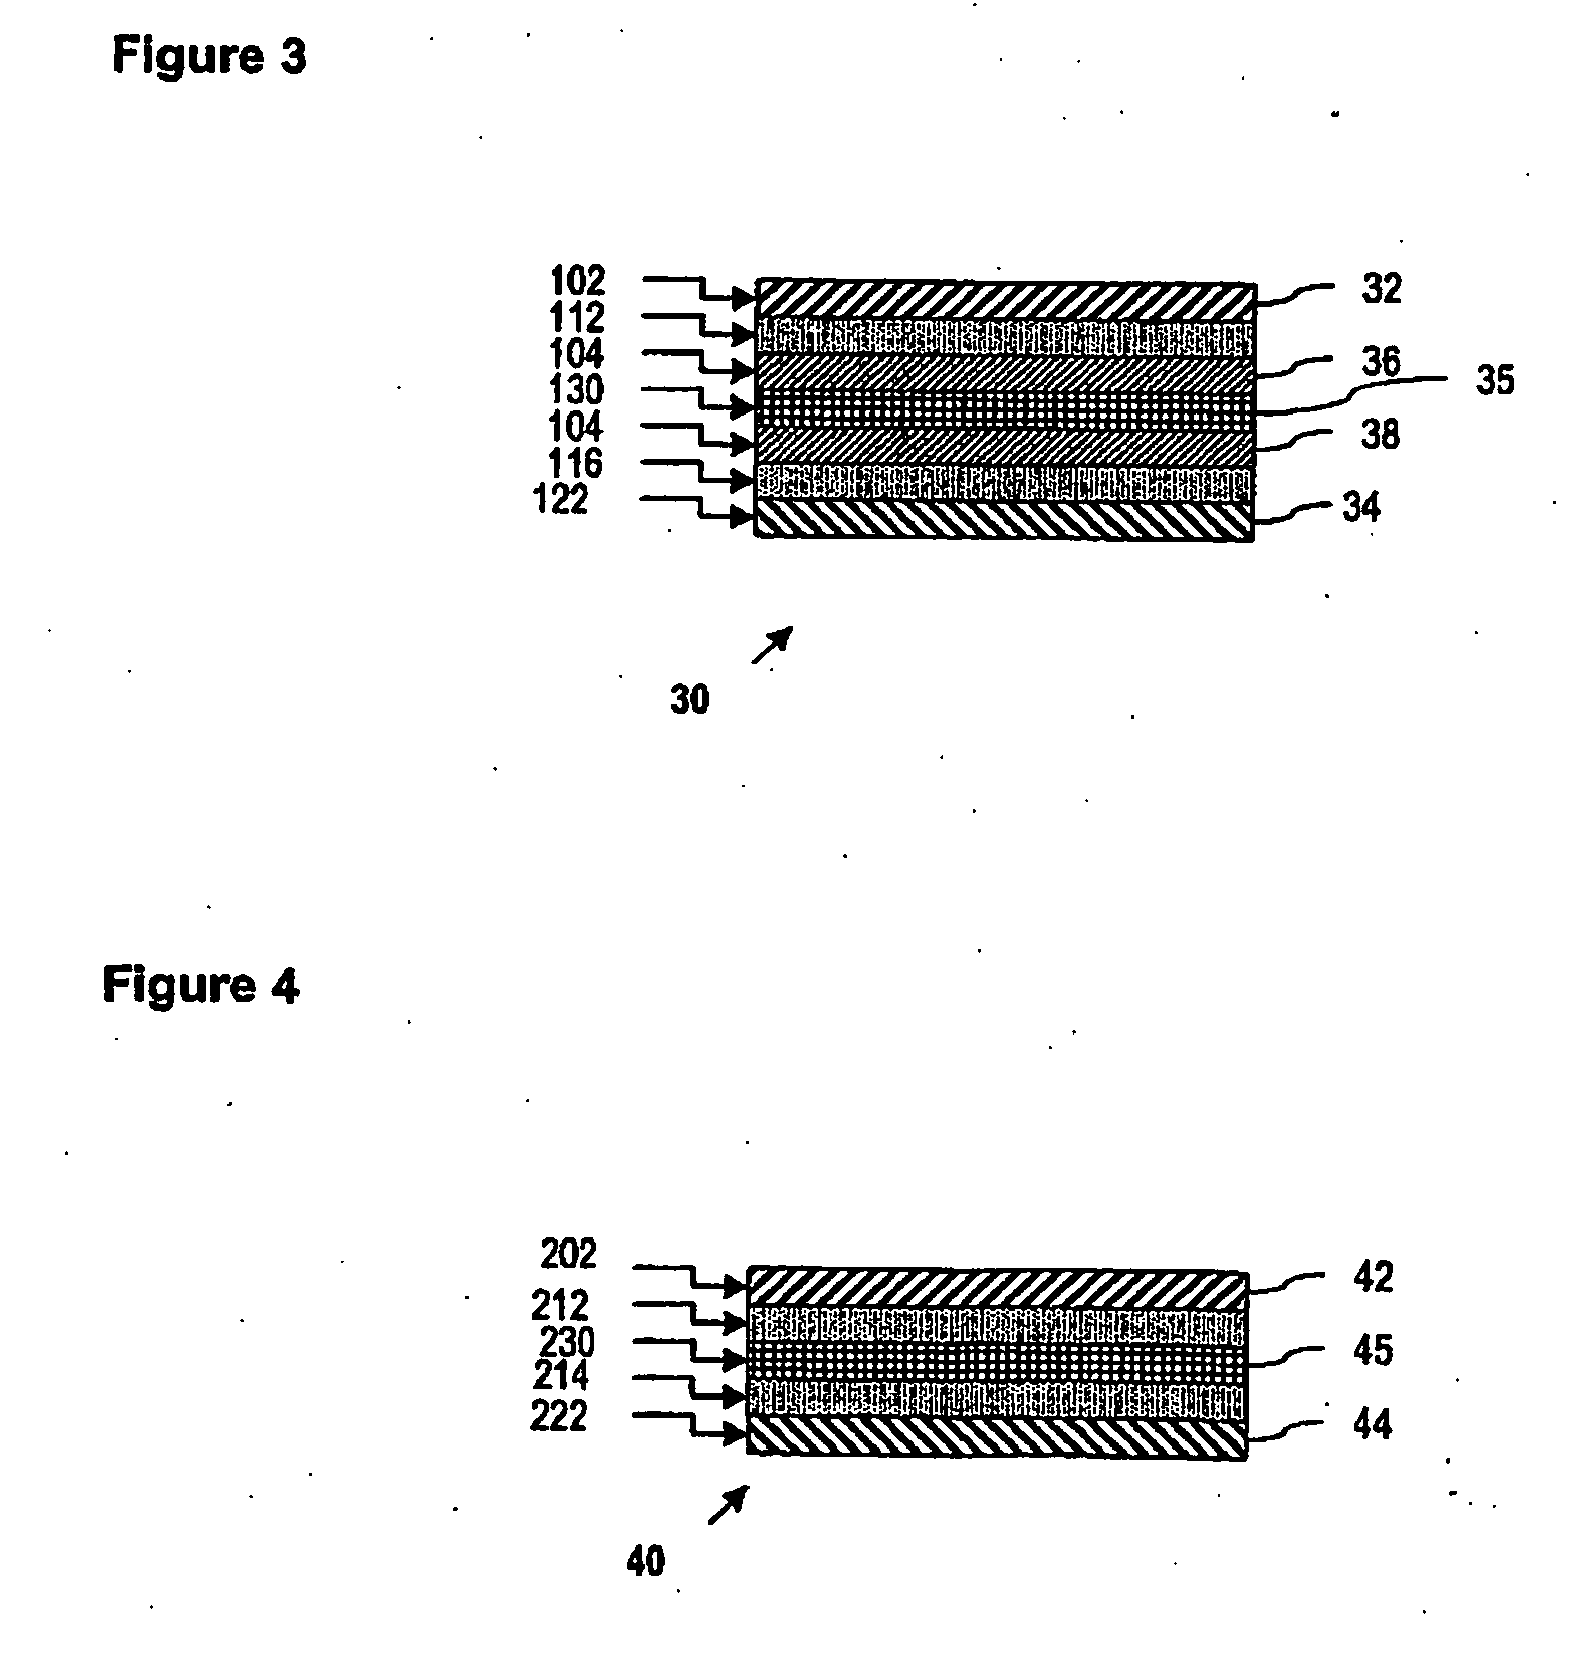 Packaging articles, films and methods that promote or